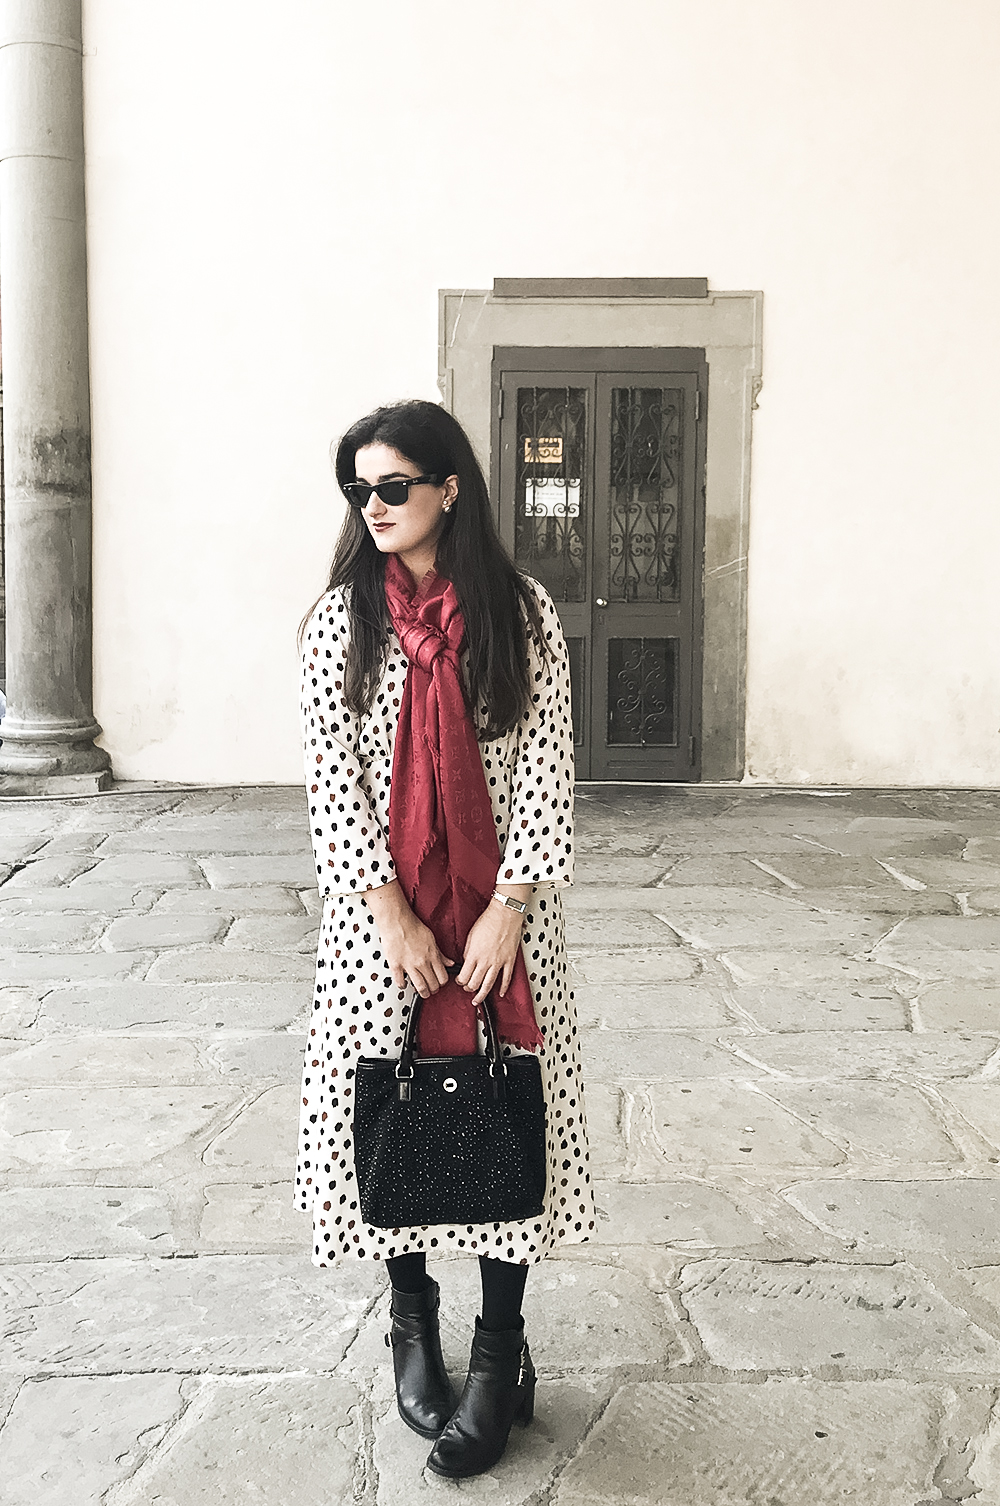 something fashion blogger influencer streetstyle firenze spain italianbloggers erasmus student hm dress what to wear_01